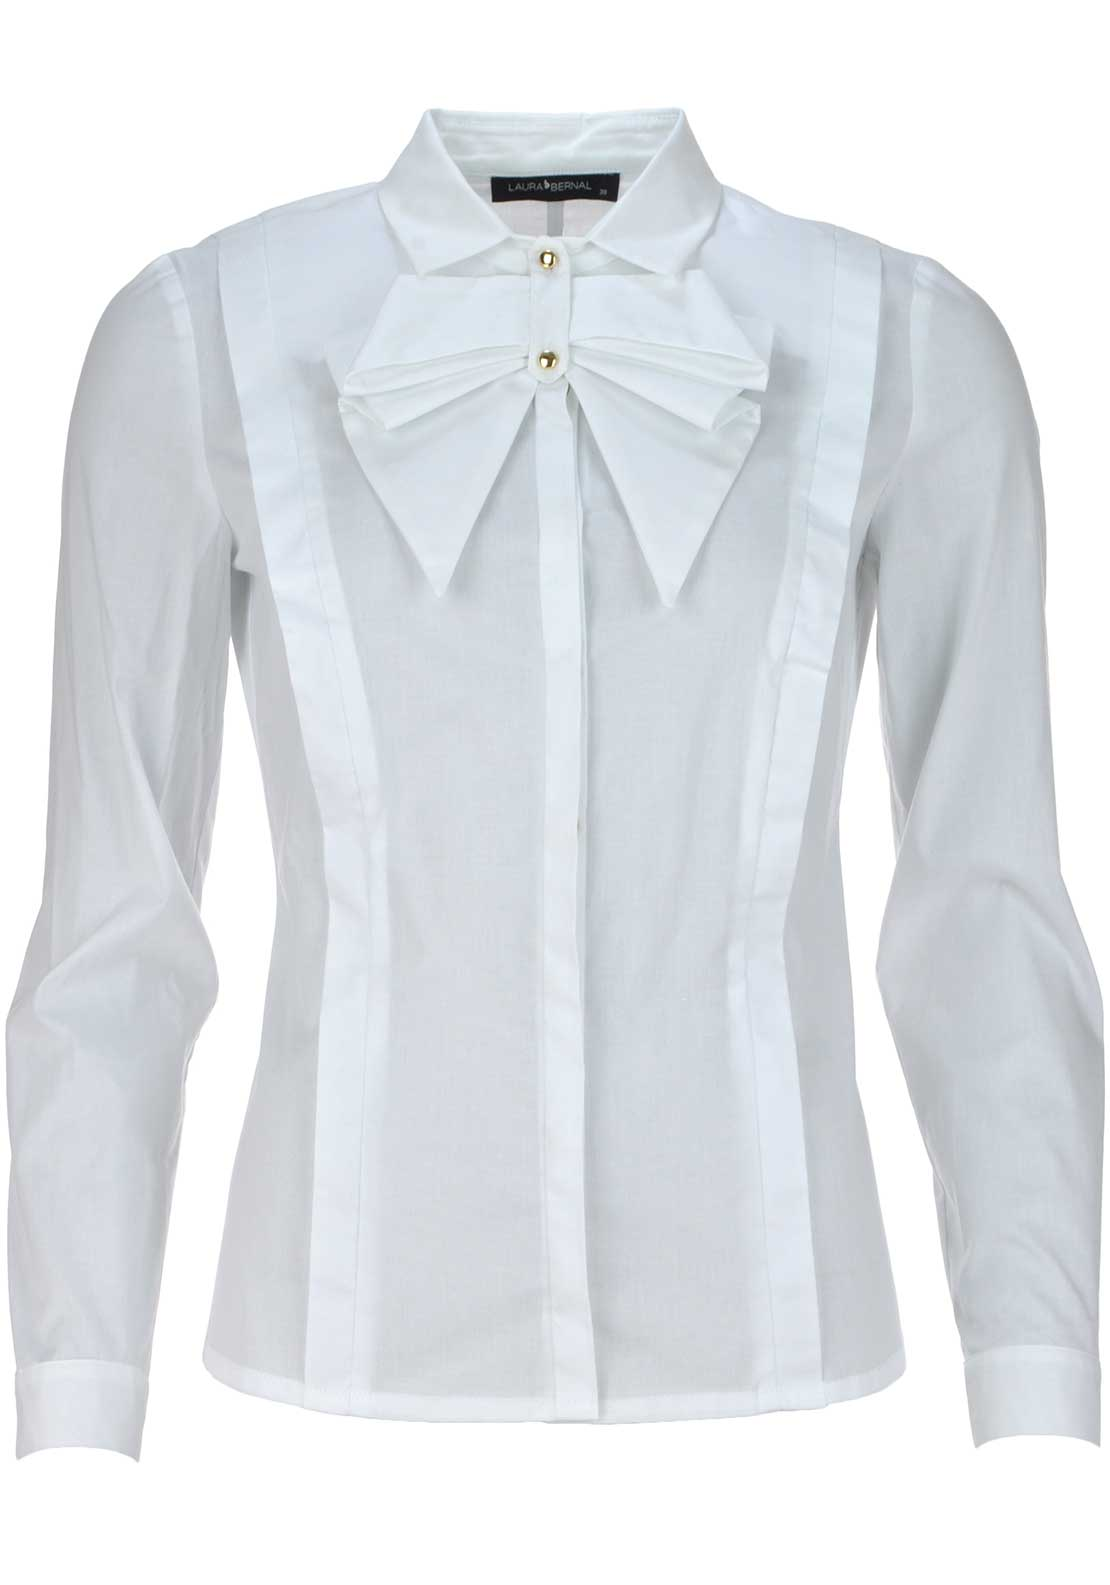 Laura Bernal Bow Detail Long Sleeve Blouse, White